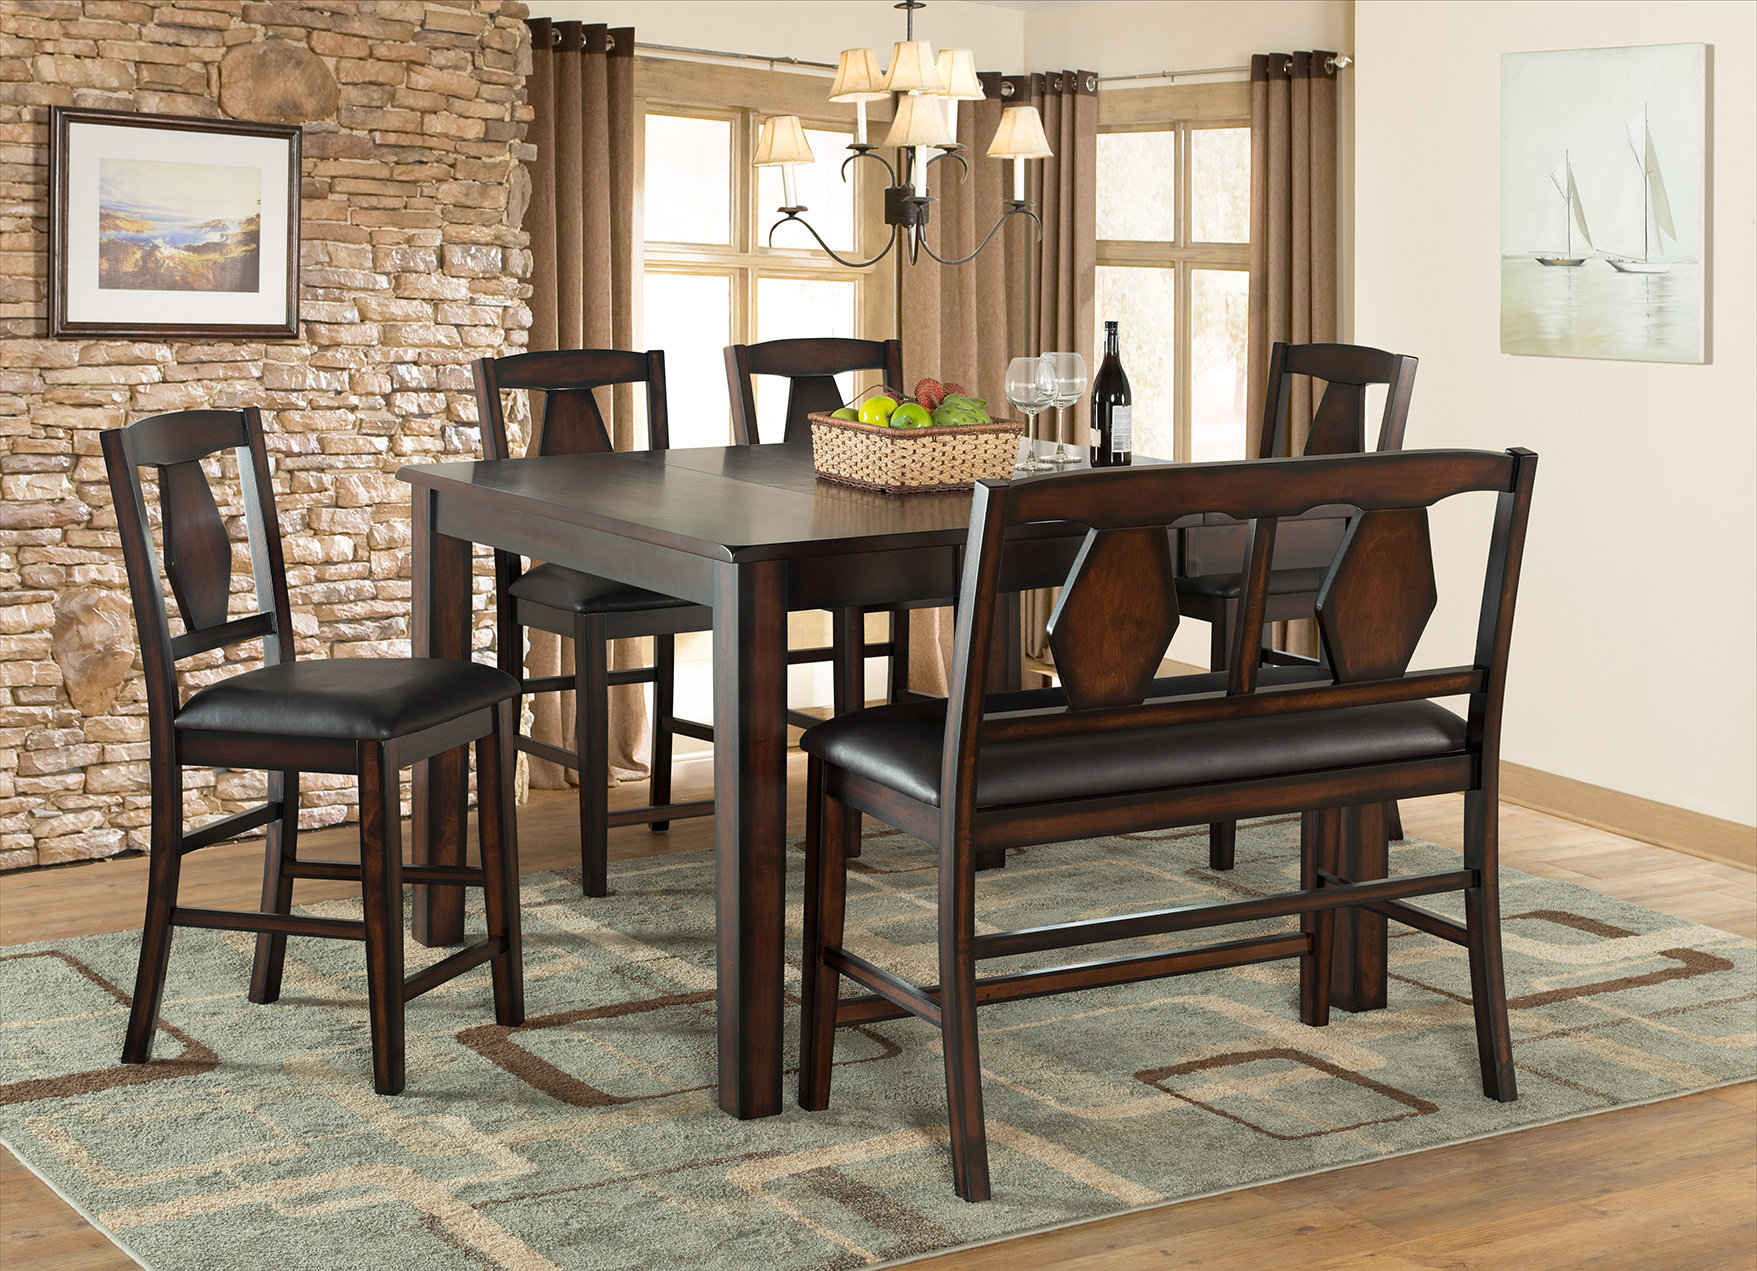 Tuscan Hills Extendable Dining Table Inside Most Up To Date Biggs 5 Piece Counter Height Solid Wood Dining Sets (Set Of 5) (View 5 of 20)